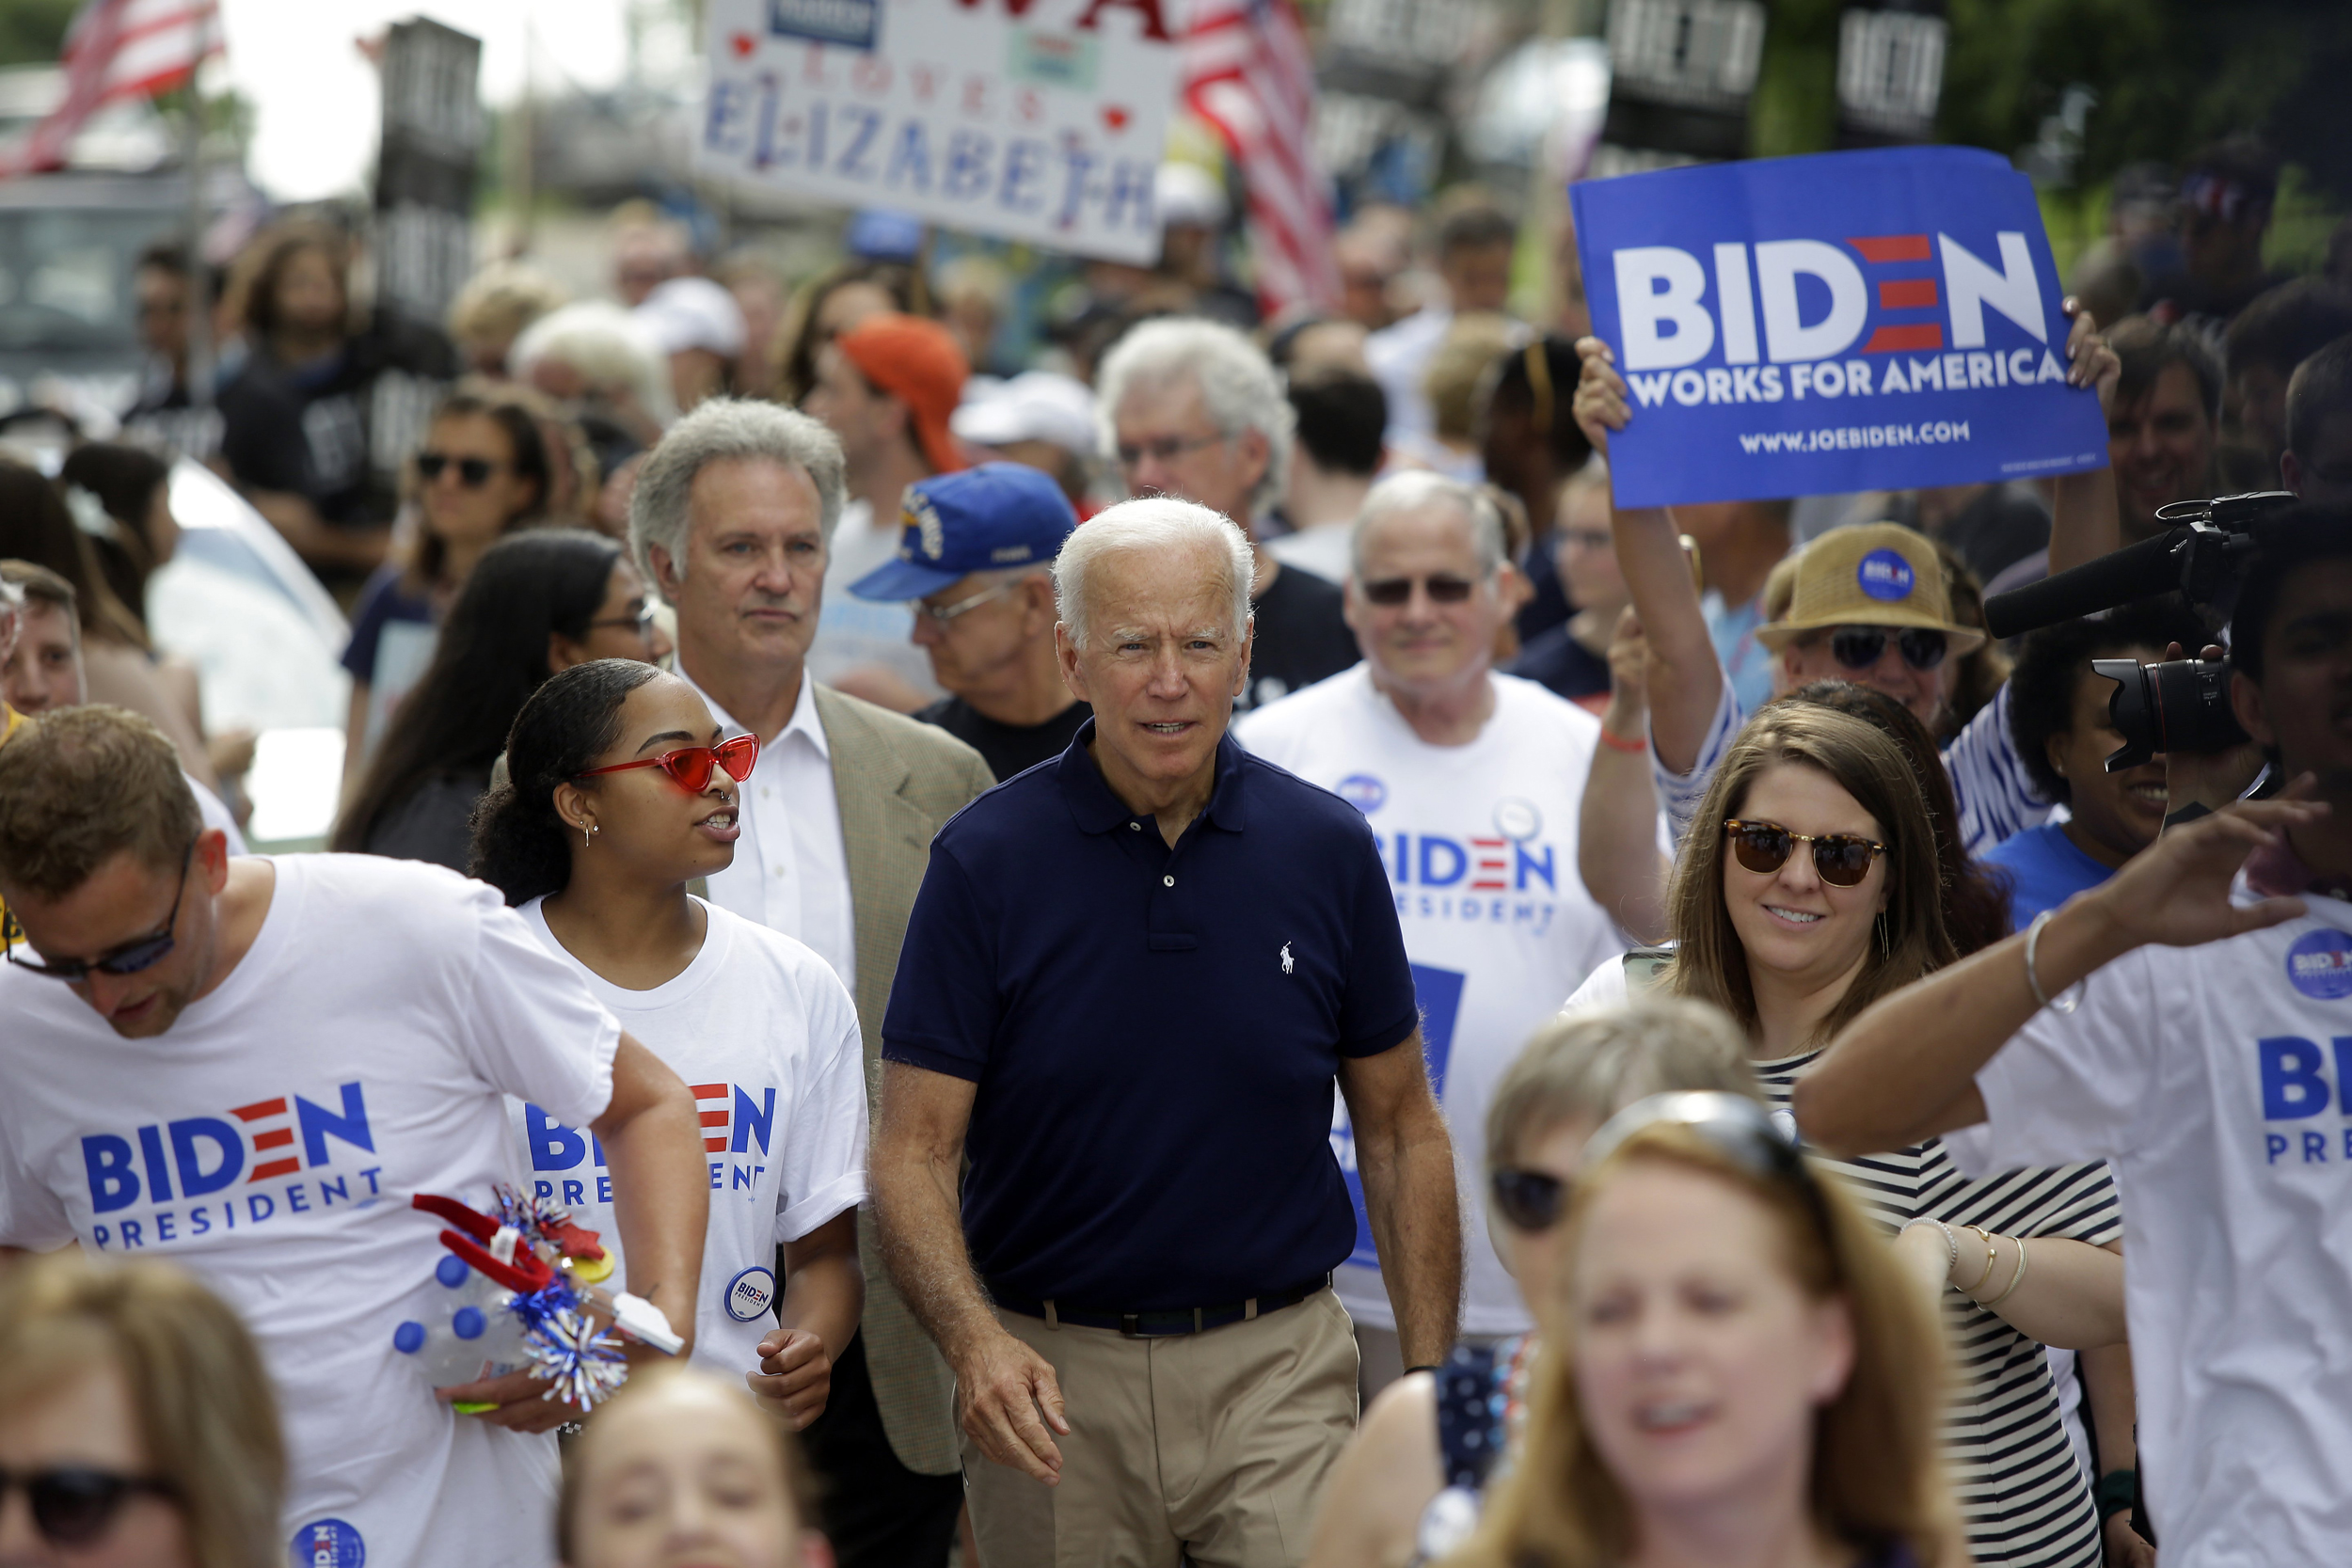 New details revealed about Biden's busing record: Why was he so strongly opposed?